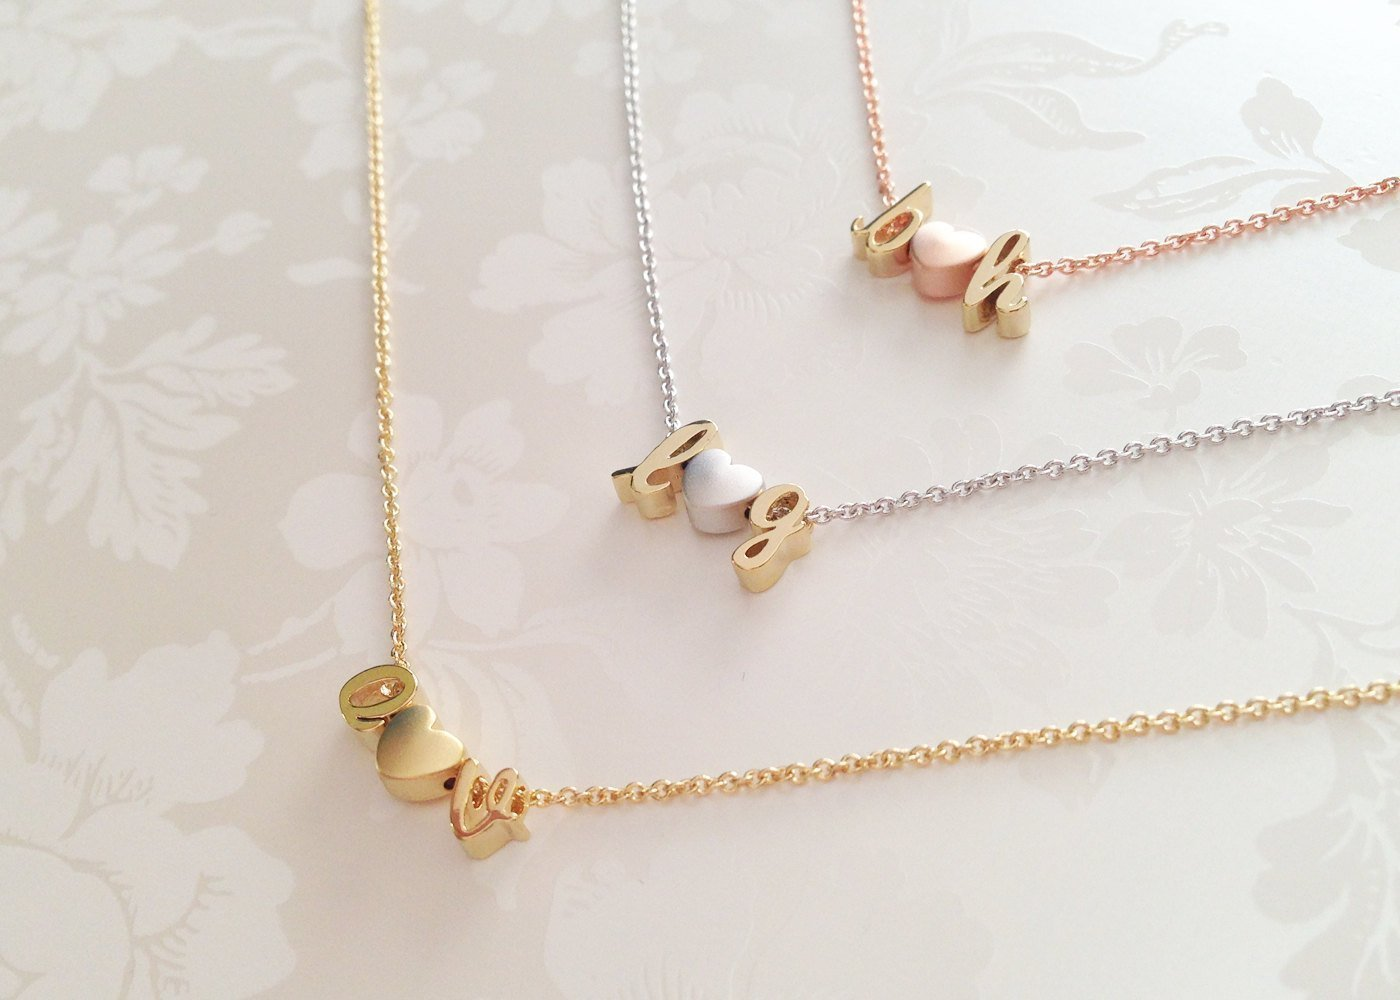 Amazon.com: Delicate Initials Heart Necklace in Gold Silver Rose ...